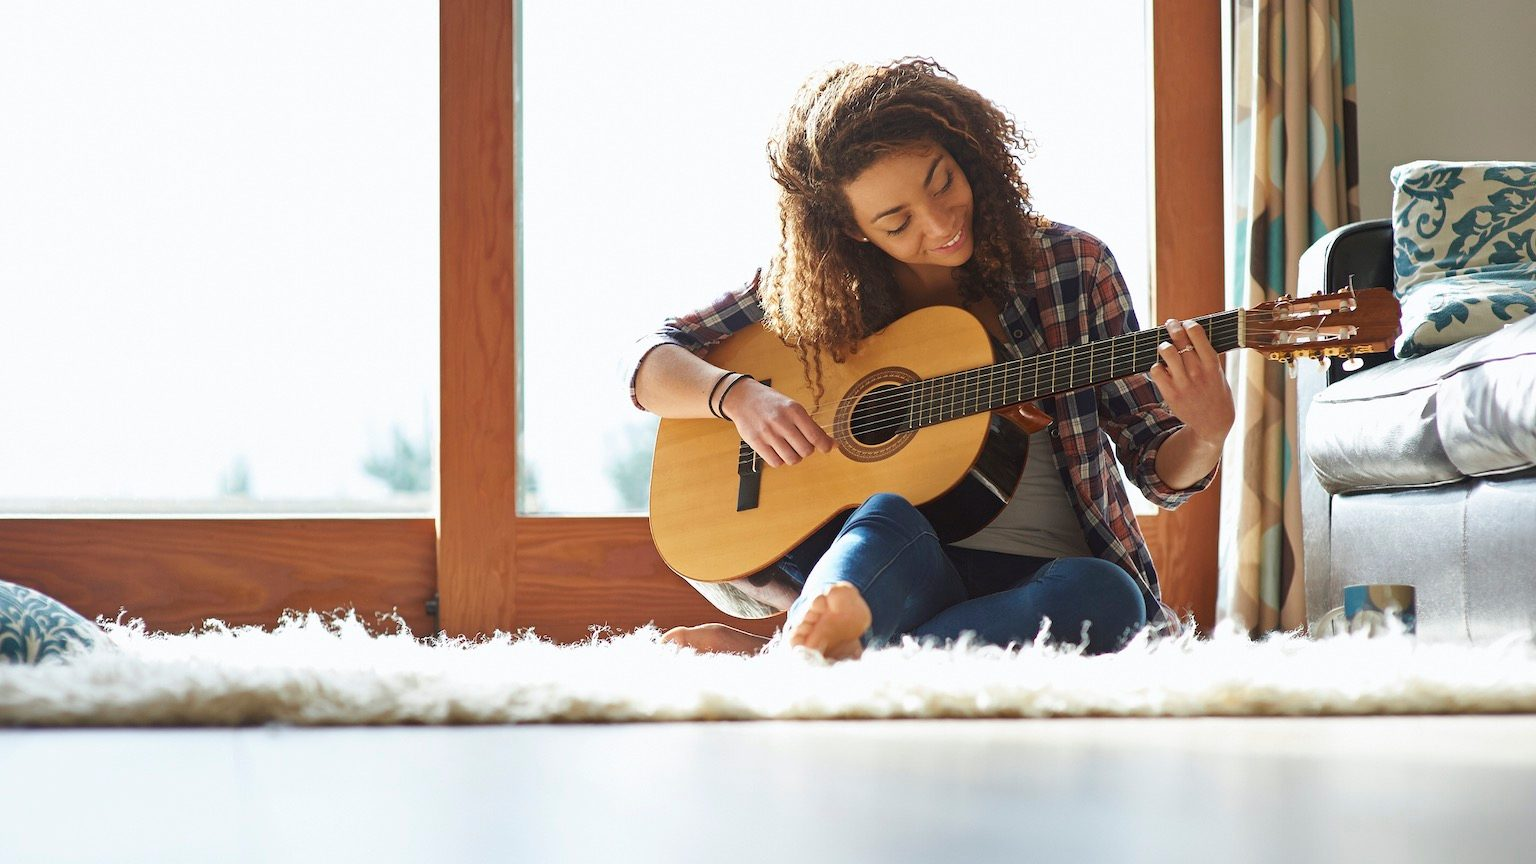 A woman sits at home and plays a guitar.